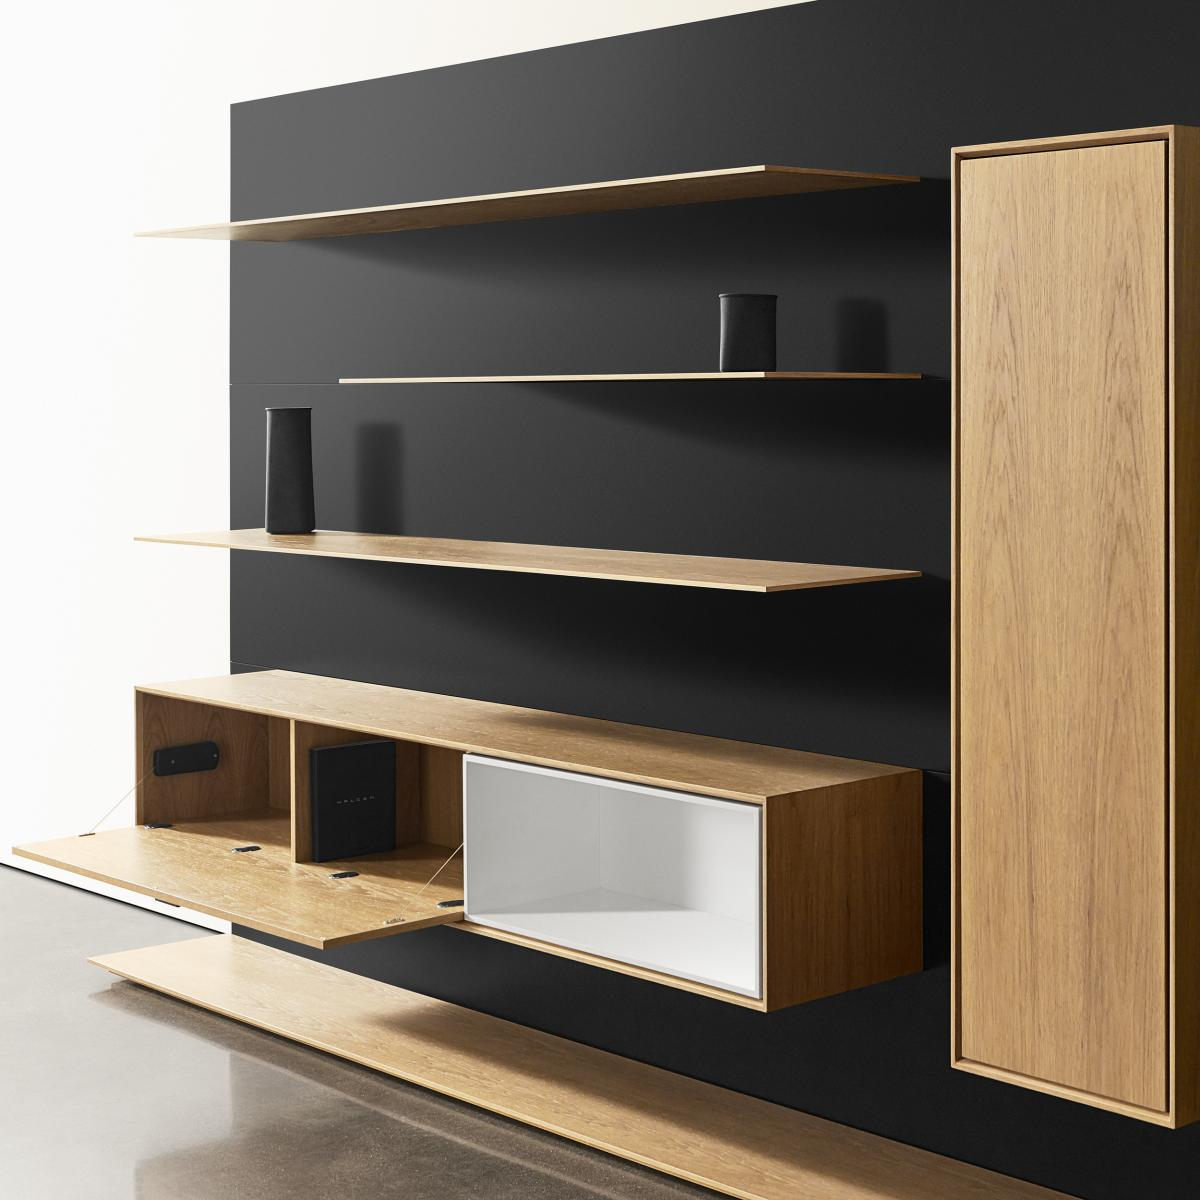 Patented, amazingly thin shelves support full loads in any wood finish.